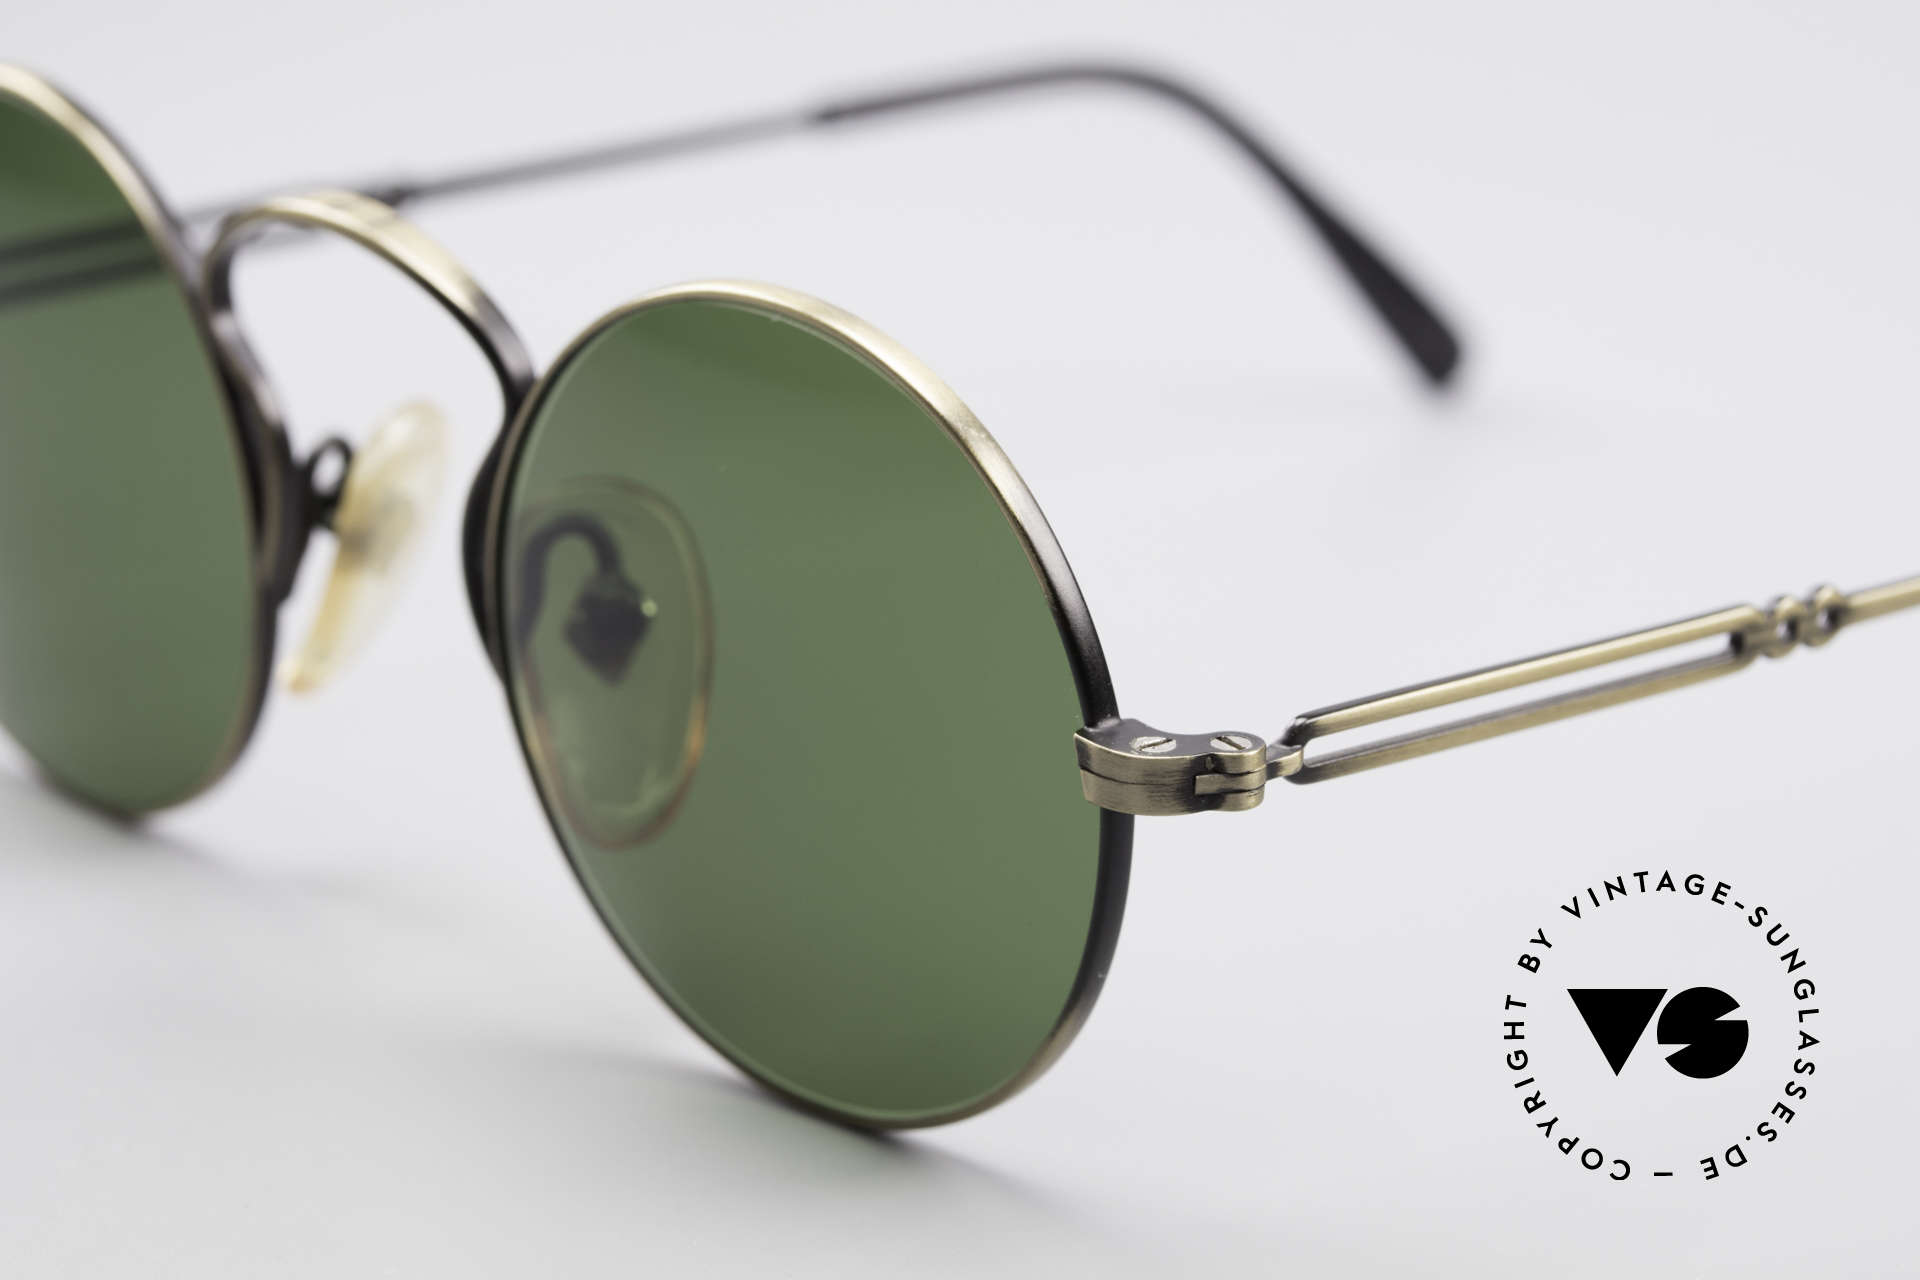 Jean Paul Gaultier 55-0172 90's Designer Sunglasses, new old stock (like all our rare vintage sunglasses), Made for Men and Women